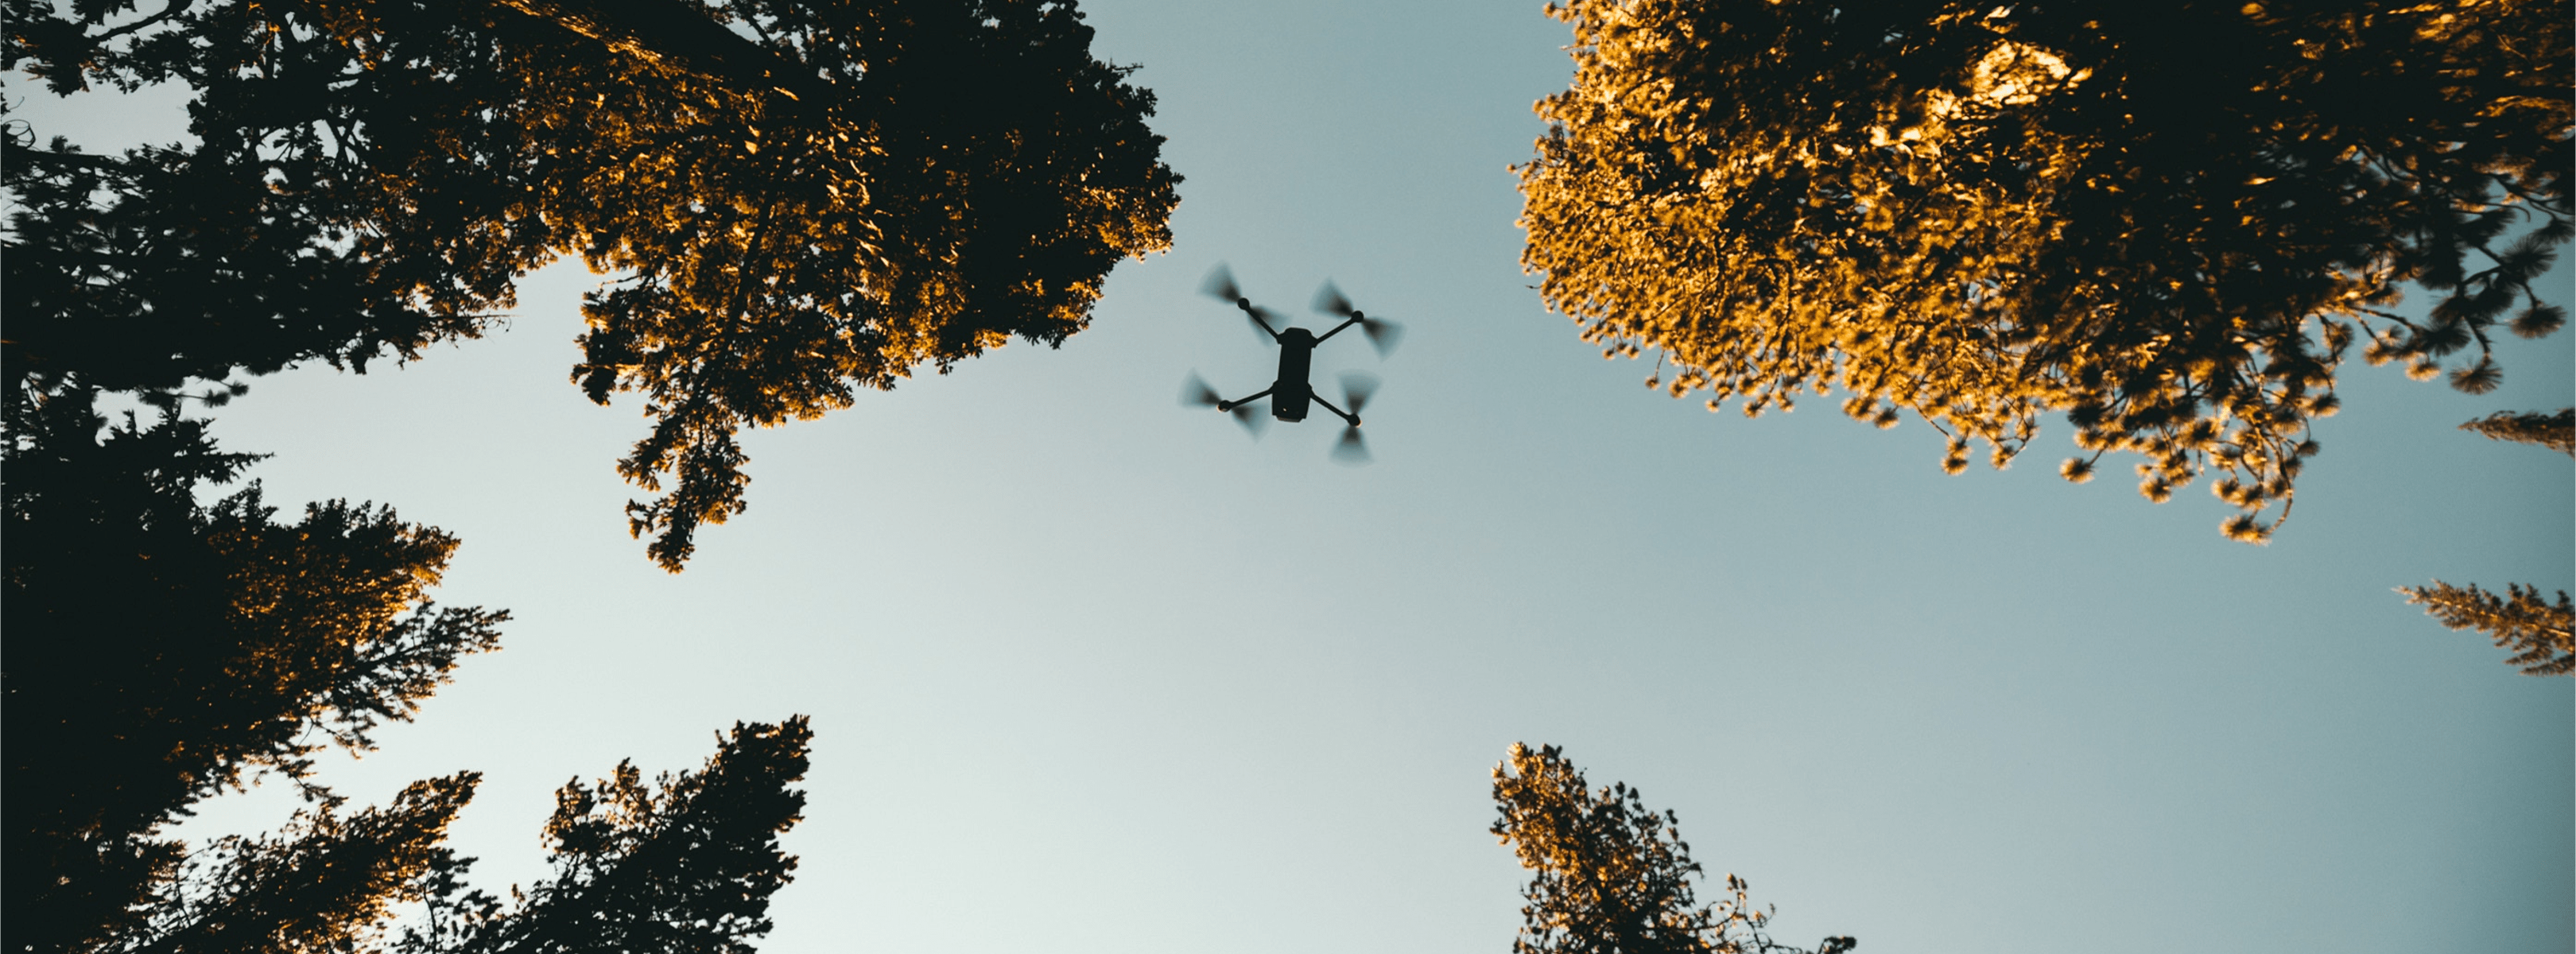 Drone Pilot Tips: Make The Most Of Spring